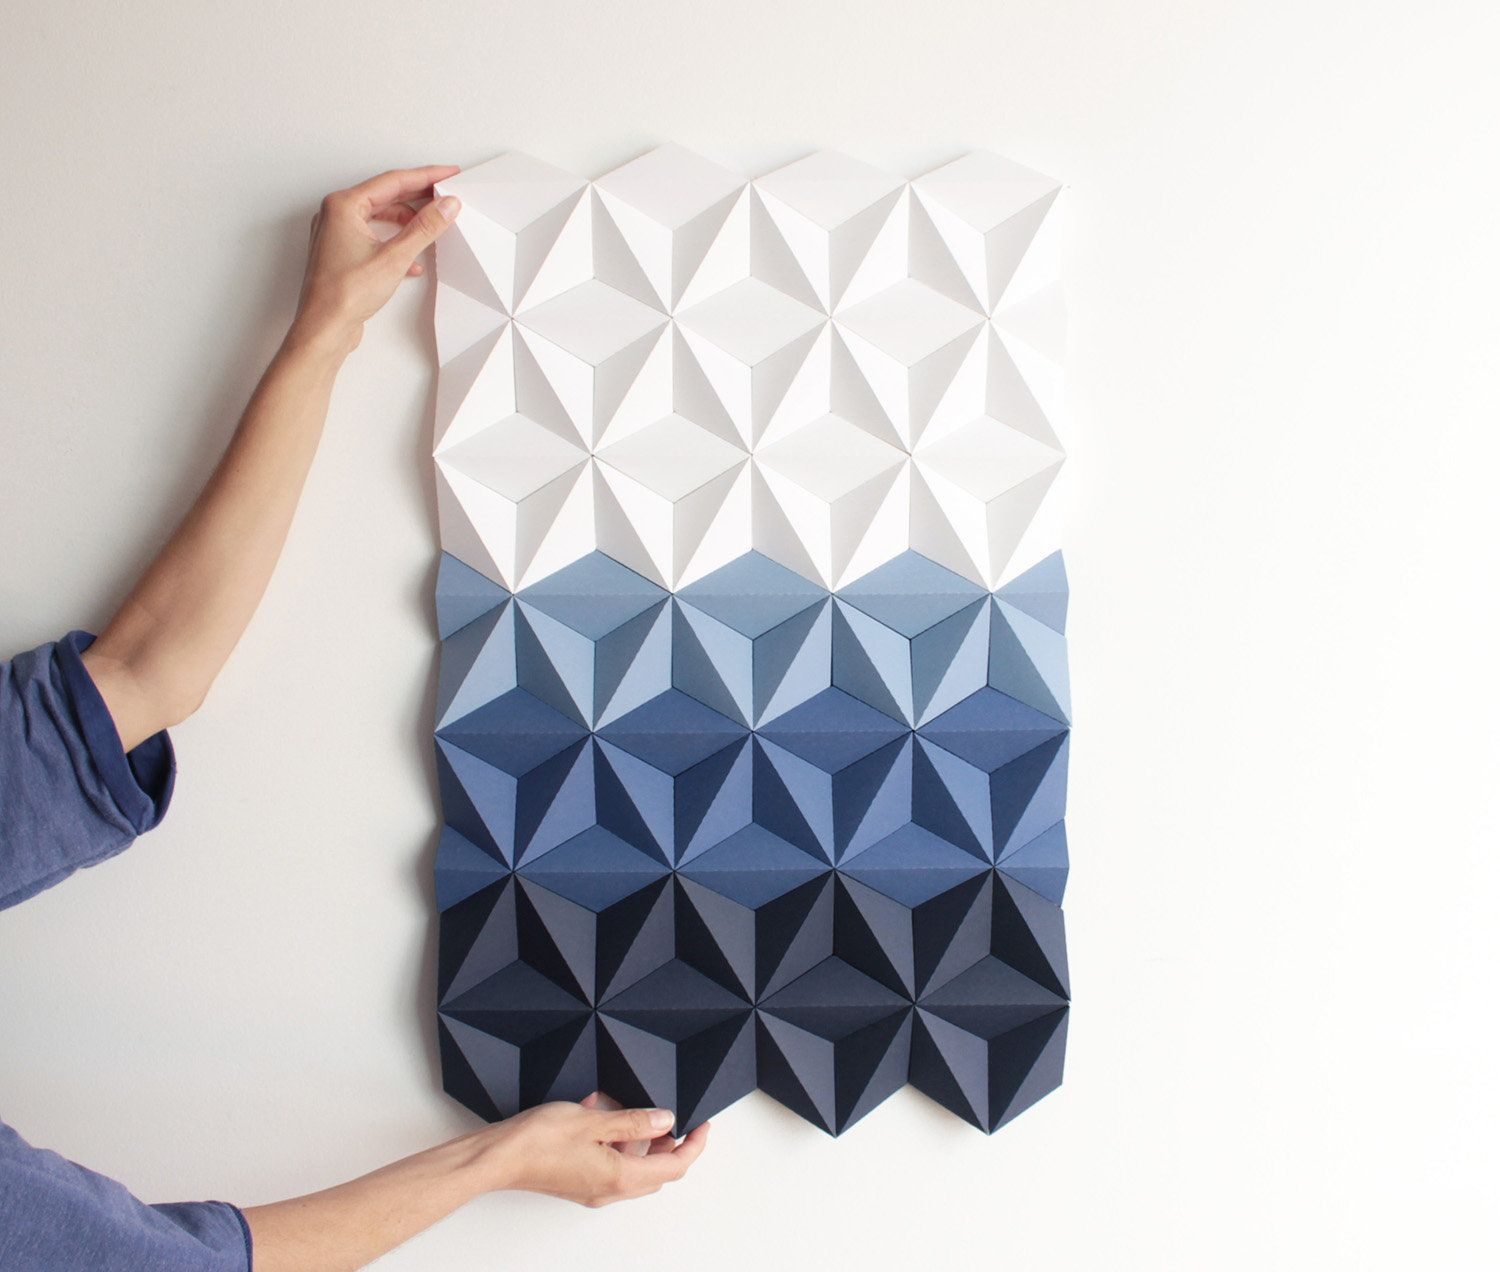 Blue Geometric Wall Art Blue And White Paper Wall Art 3d Geometric Wall Decor Tile Wall Art Living Room Art Paper Decor Moduuli Blue Tile Wall Art Paper Wall